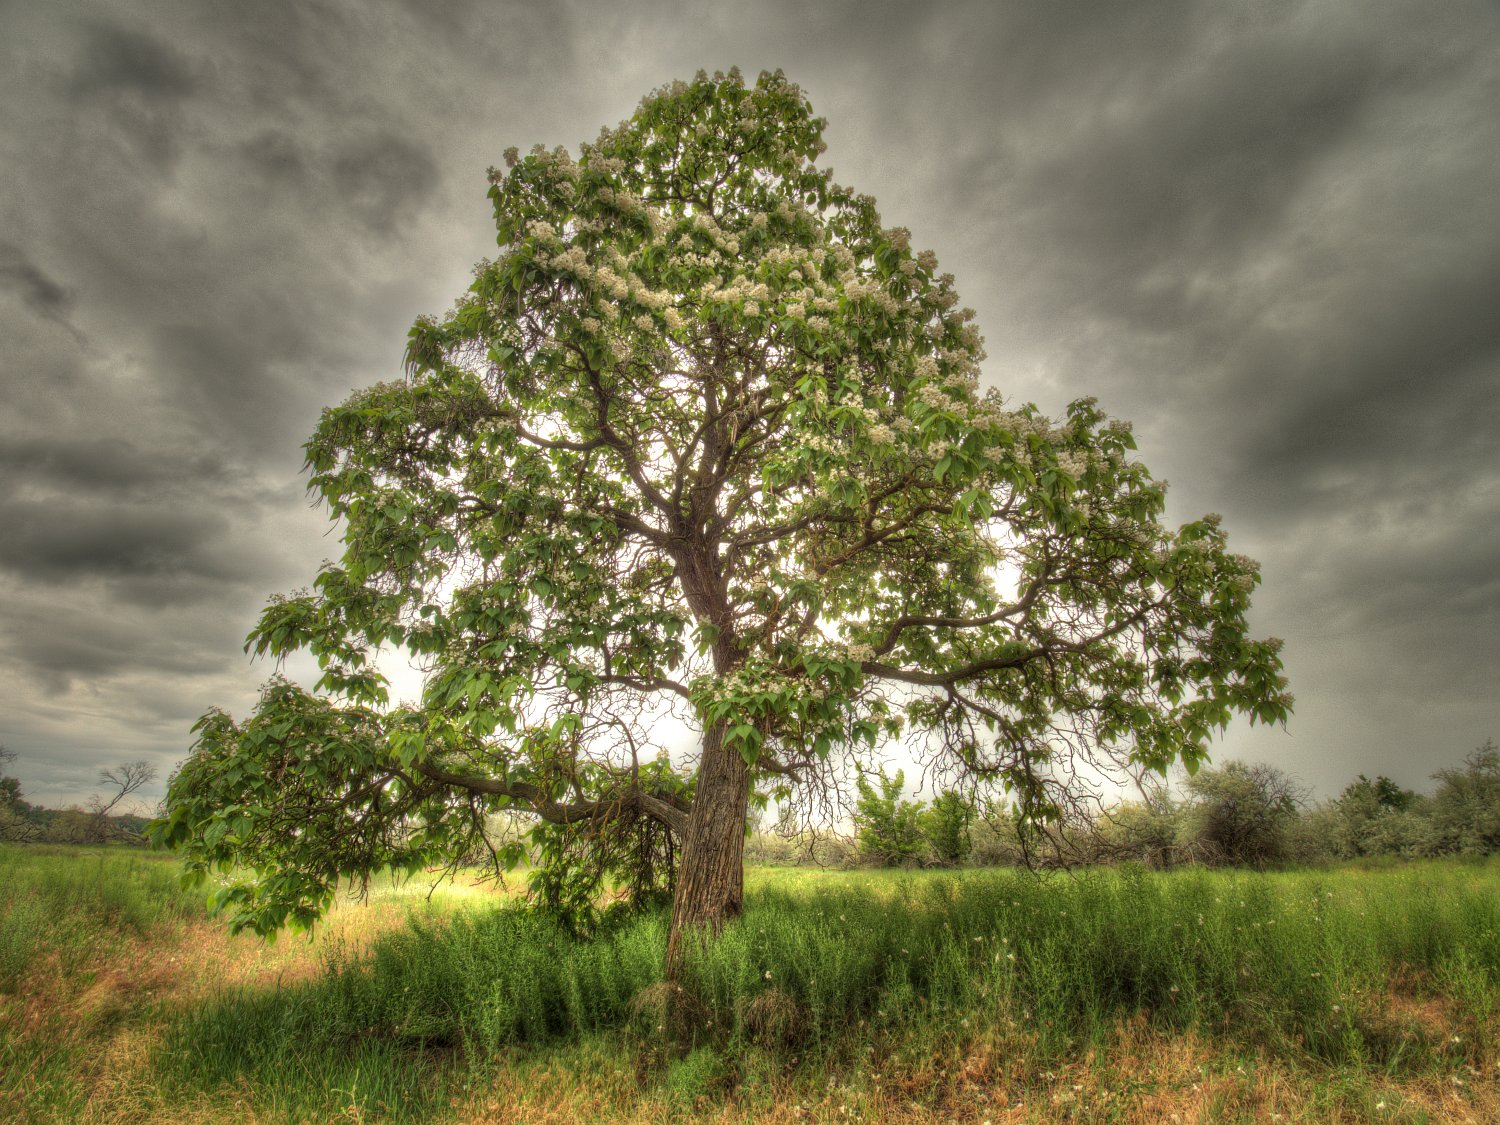 The Wishing Tree - A highly processed 'artistic' photograph.